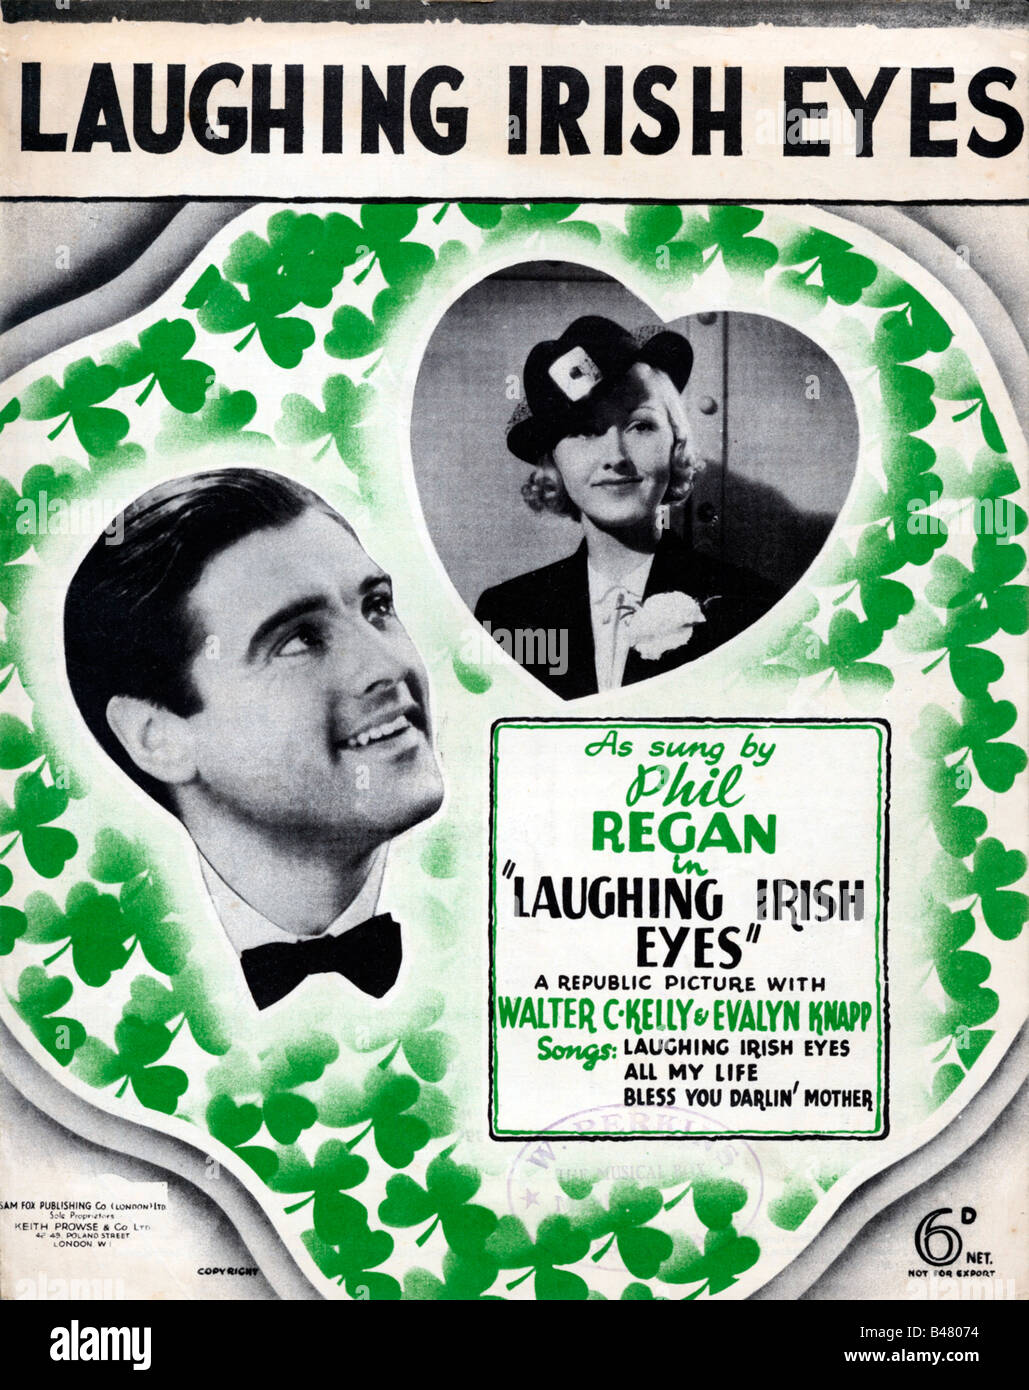 Laughing Irish Eyes music sheet cover for the title song of the 1936 movie sung by Phil Regan - Stock Image